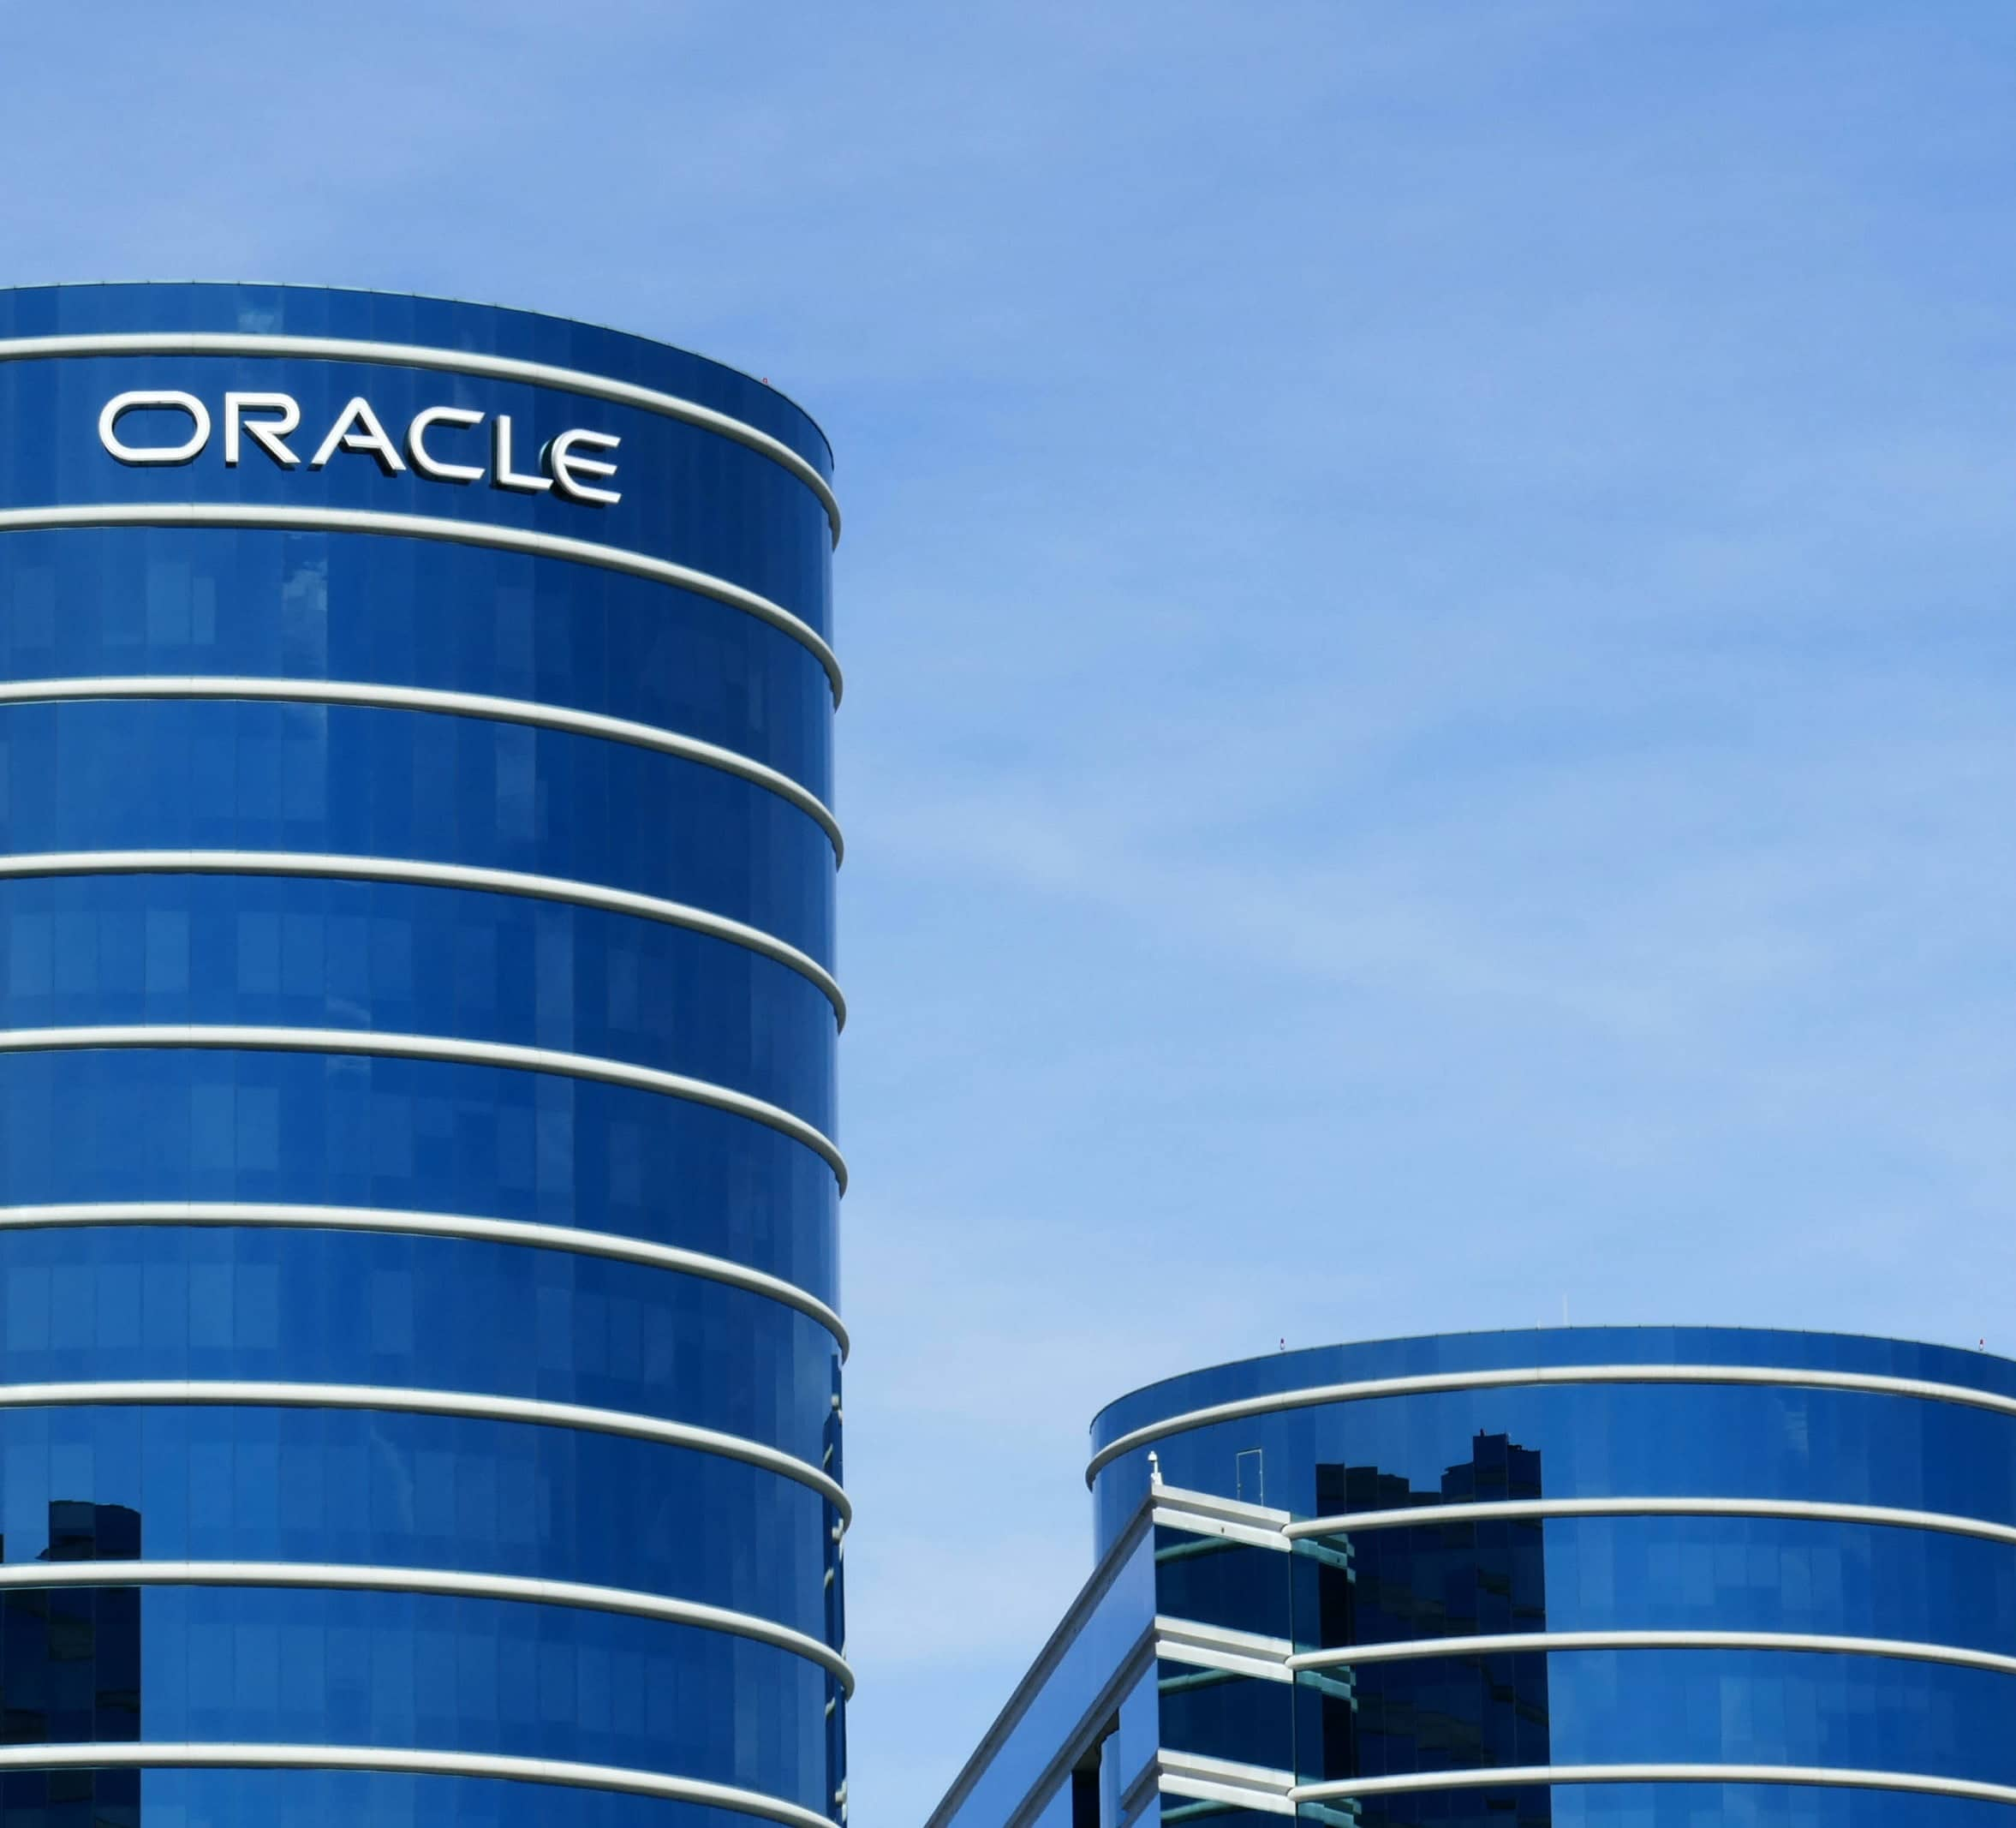 SUPREME COURT STEPS INTO GOOGLE-ORACLE COPYRIGHT FIGHT